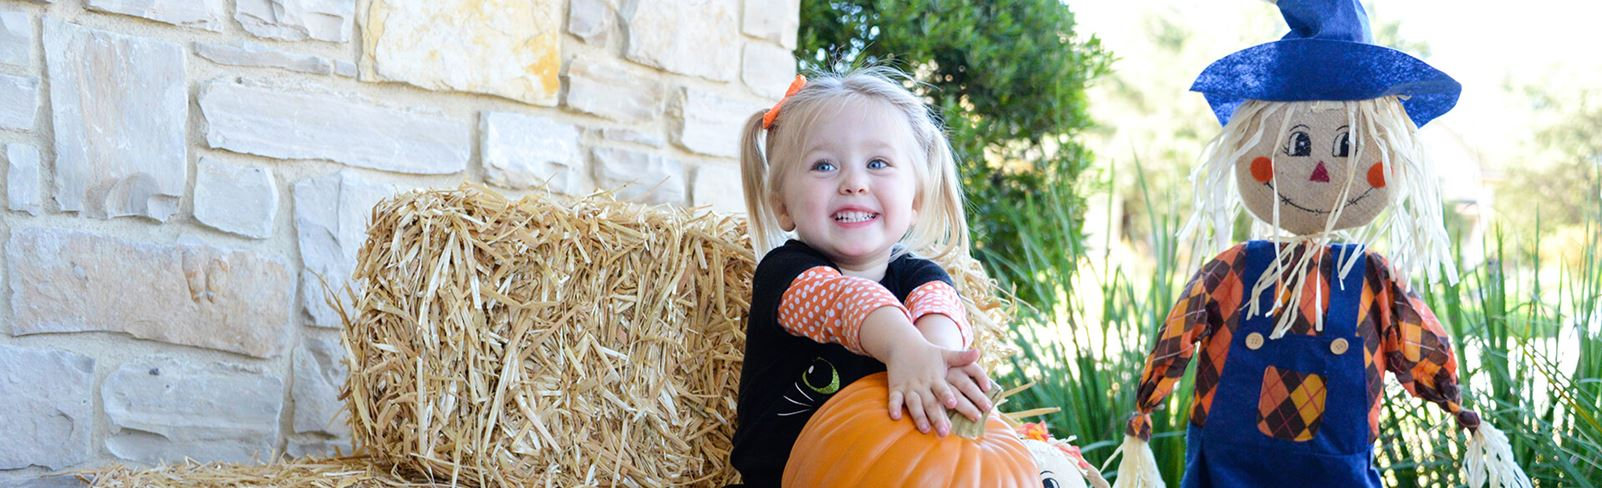 Rancho Sienna Girl Holding Pumpkin with Dog and Scarecrow at Harvest Festival Event